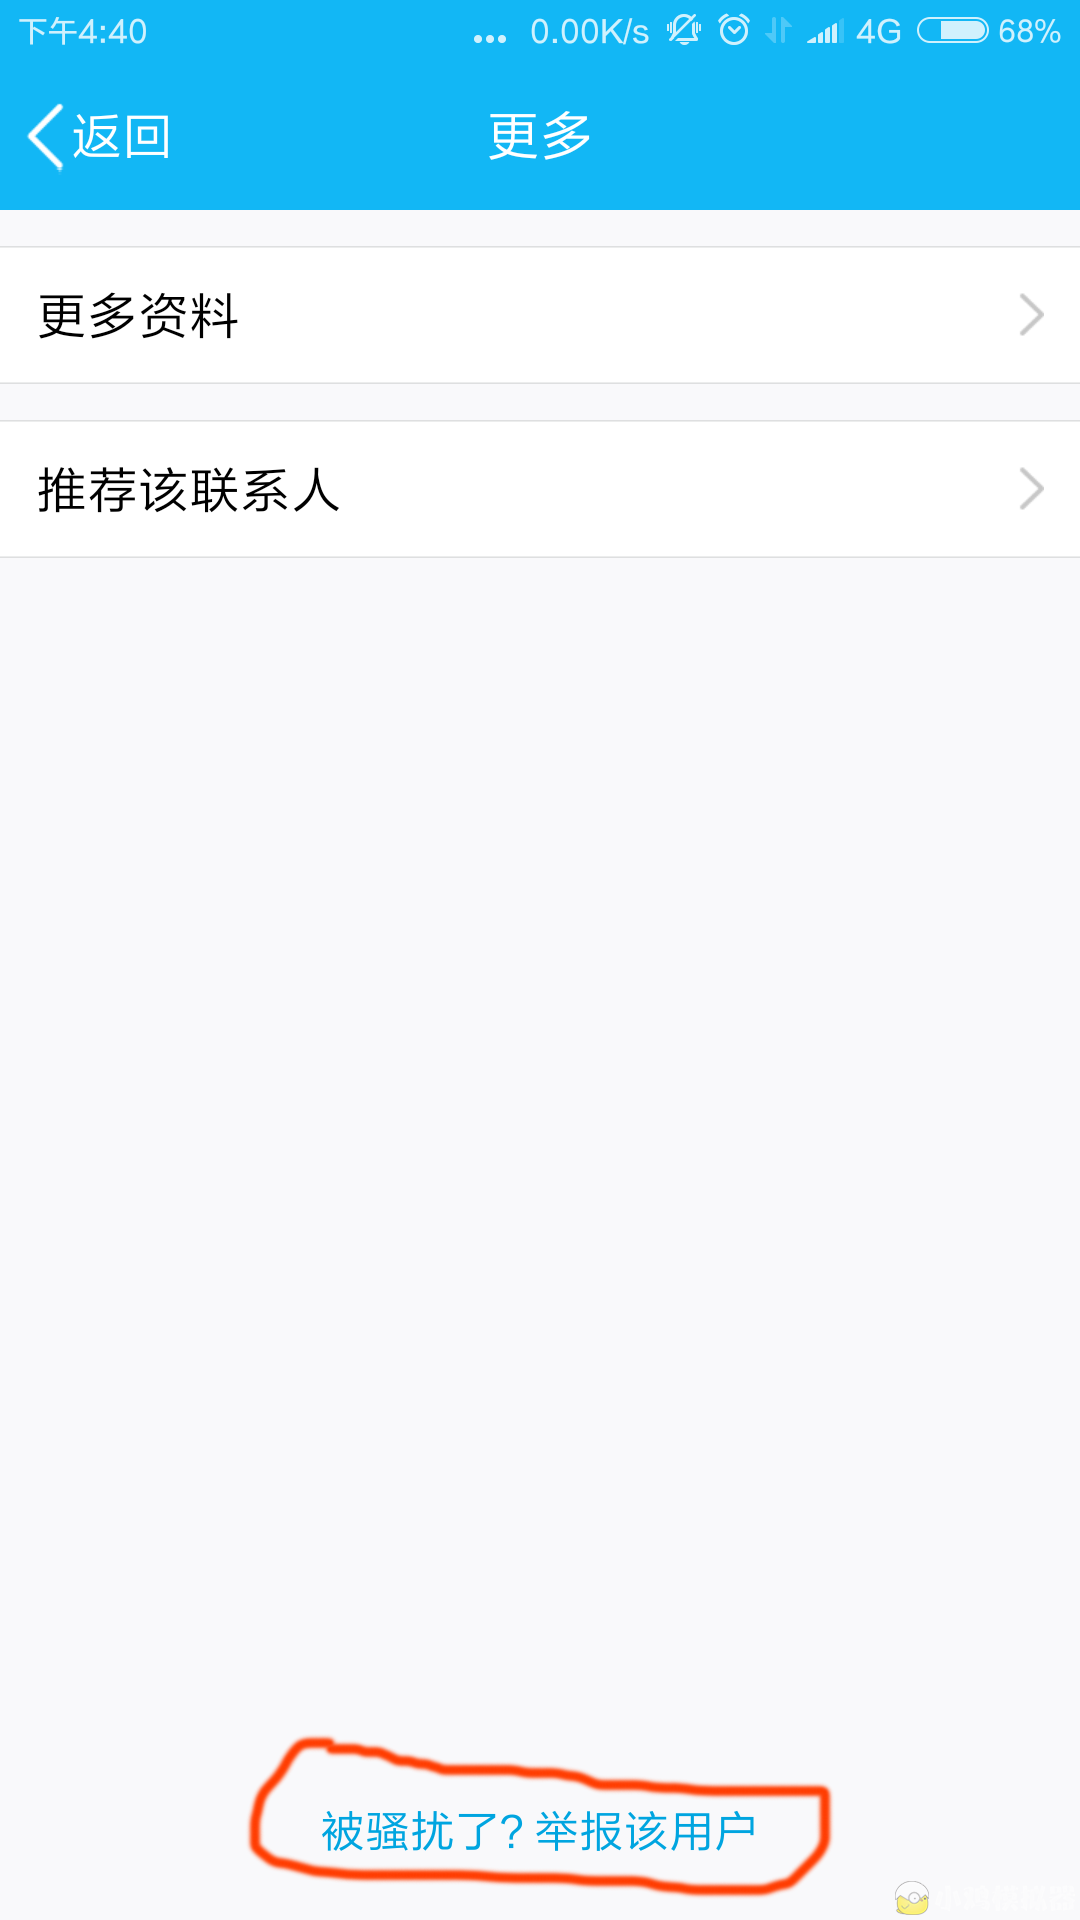 Screenshot_2016-07-25-16-40-36-584_com.tencent.mo.png